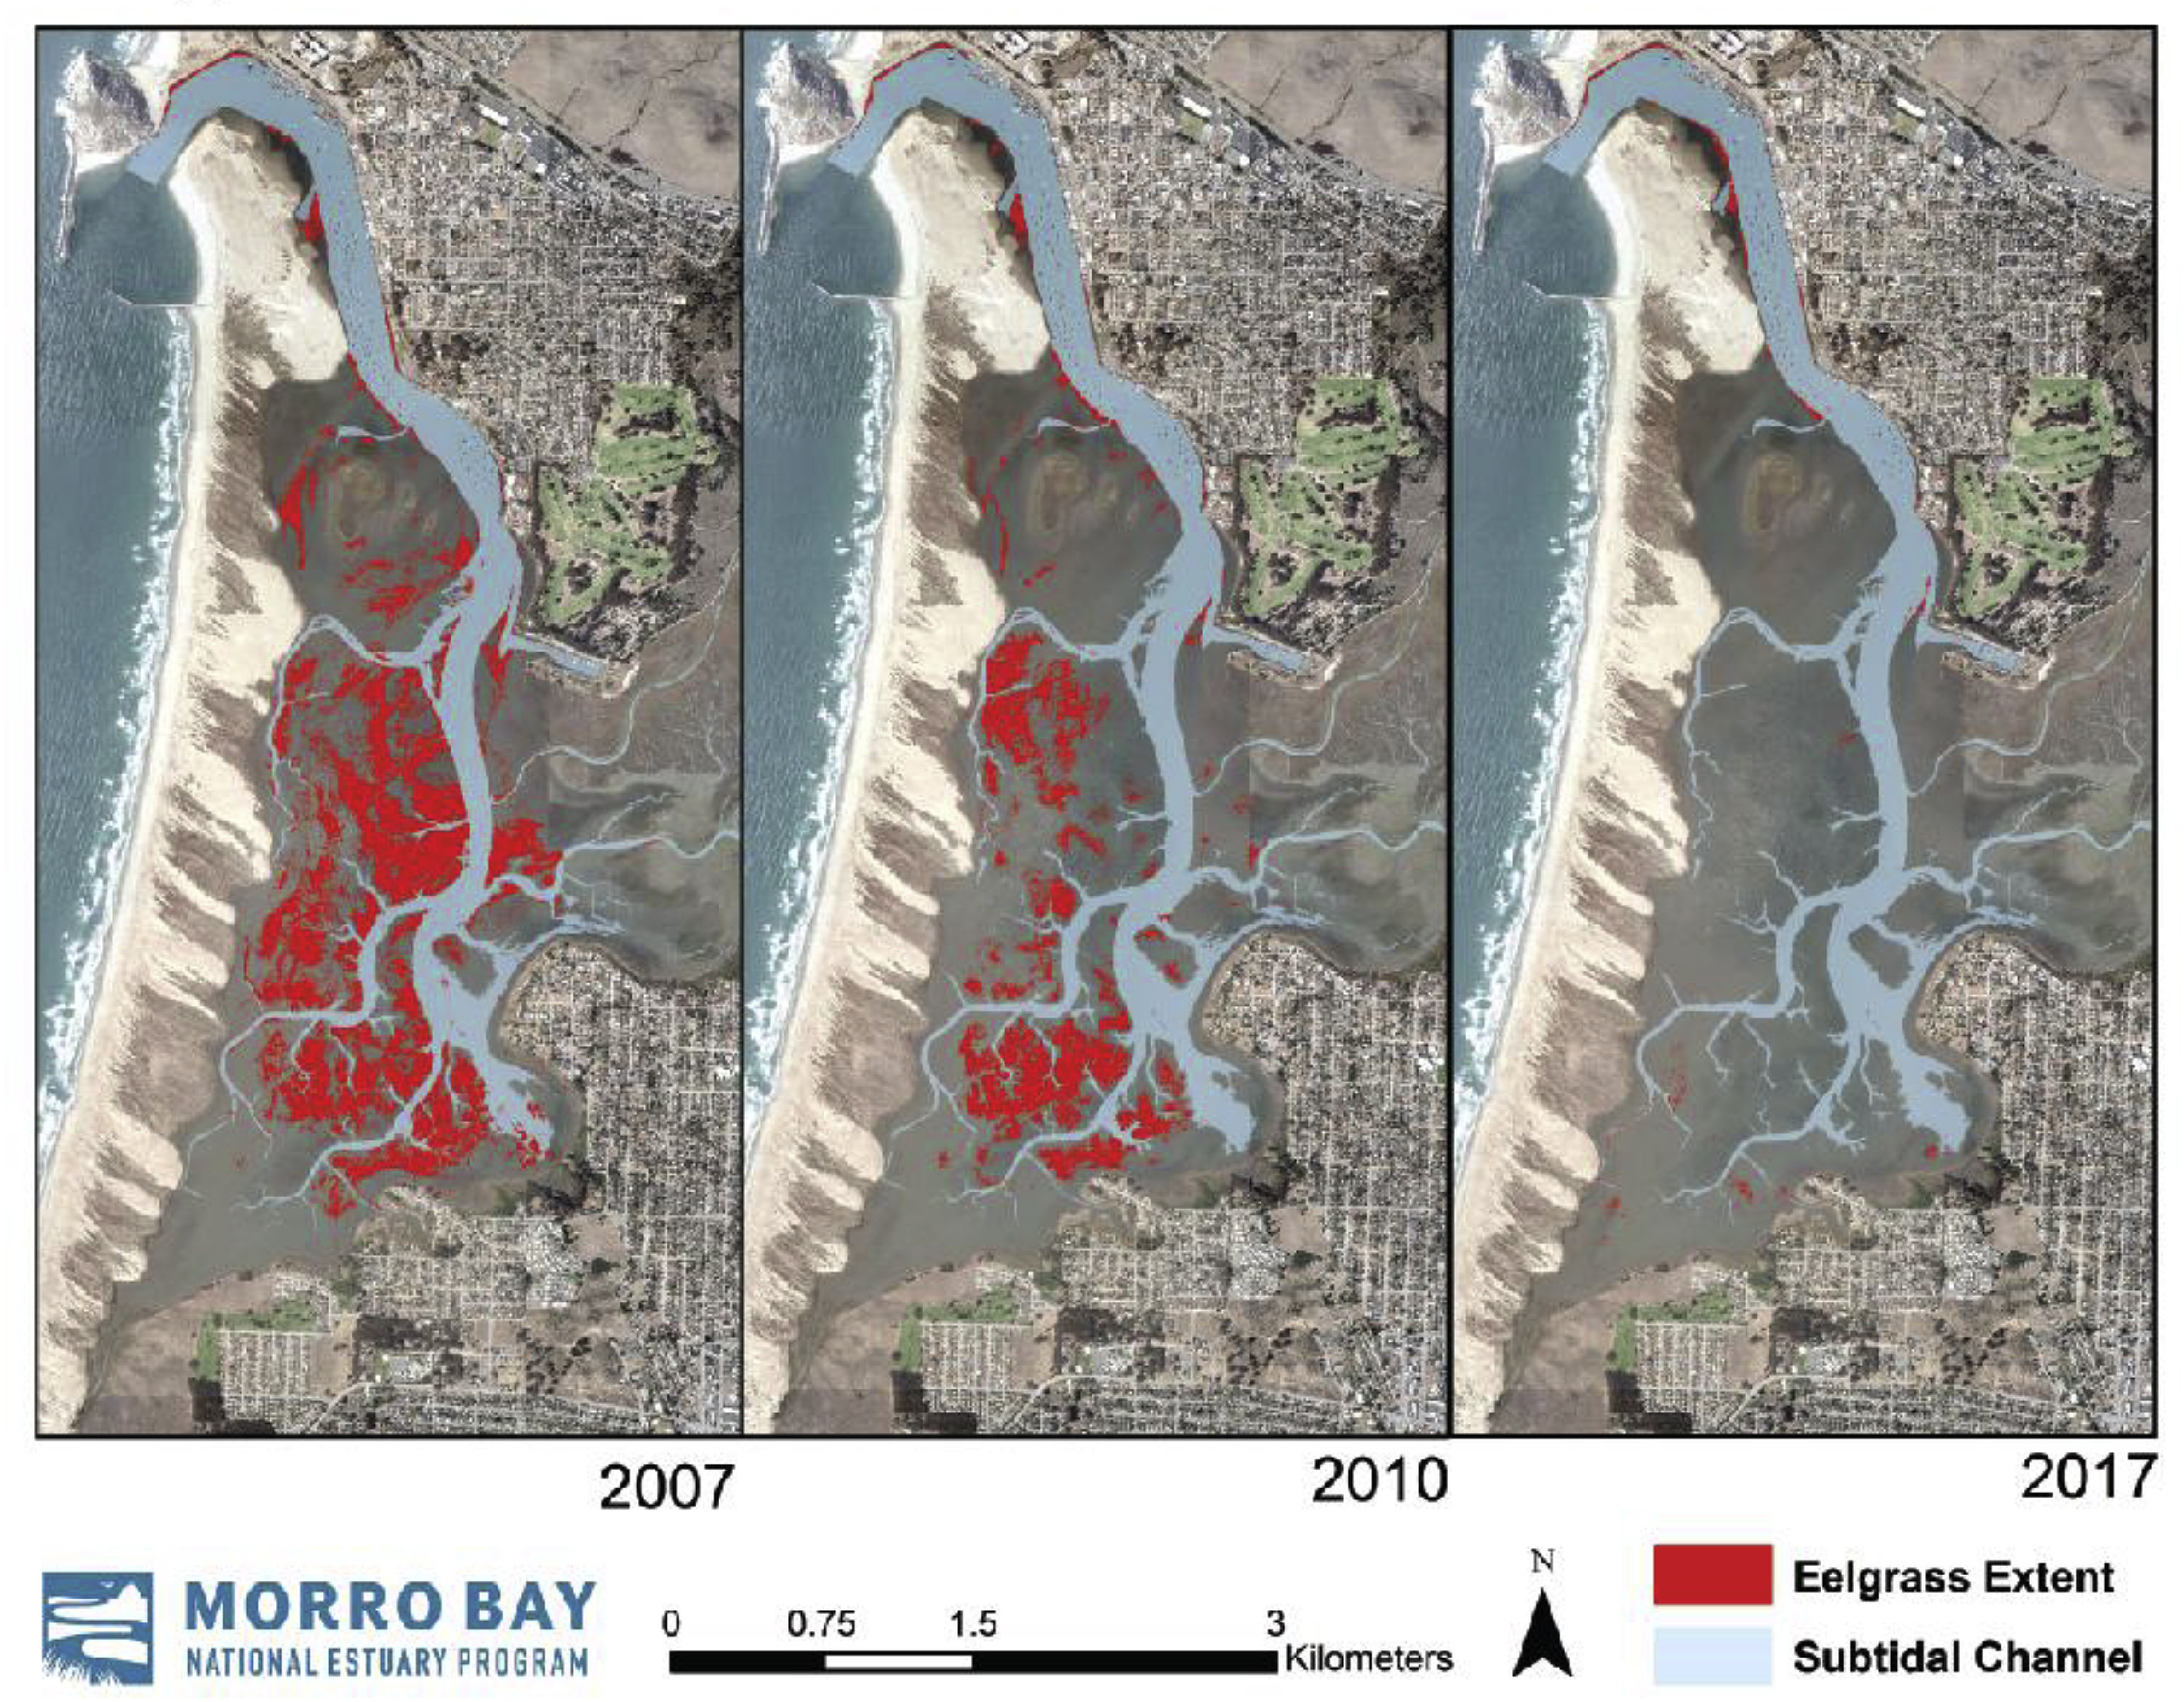 3 maps of morro bay showing dramatic decline in eelgrass extent in 2007, 2010, and 2017.